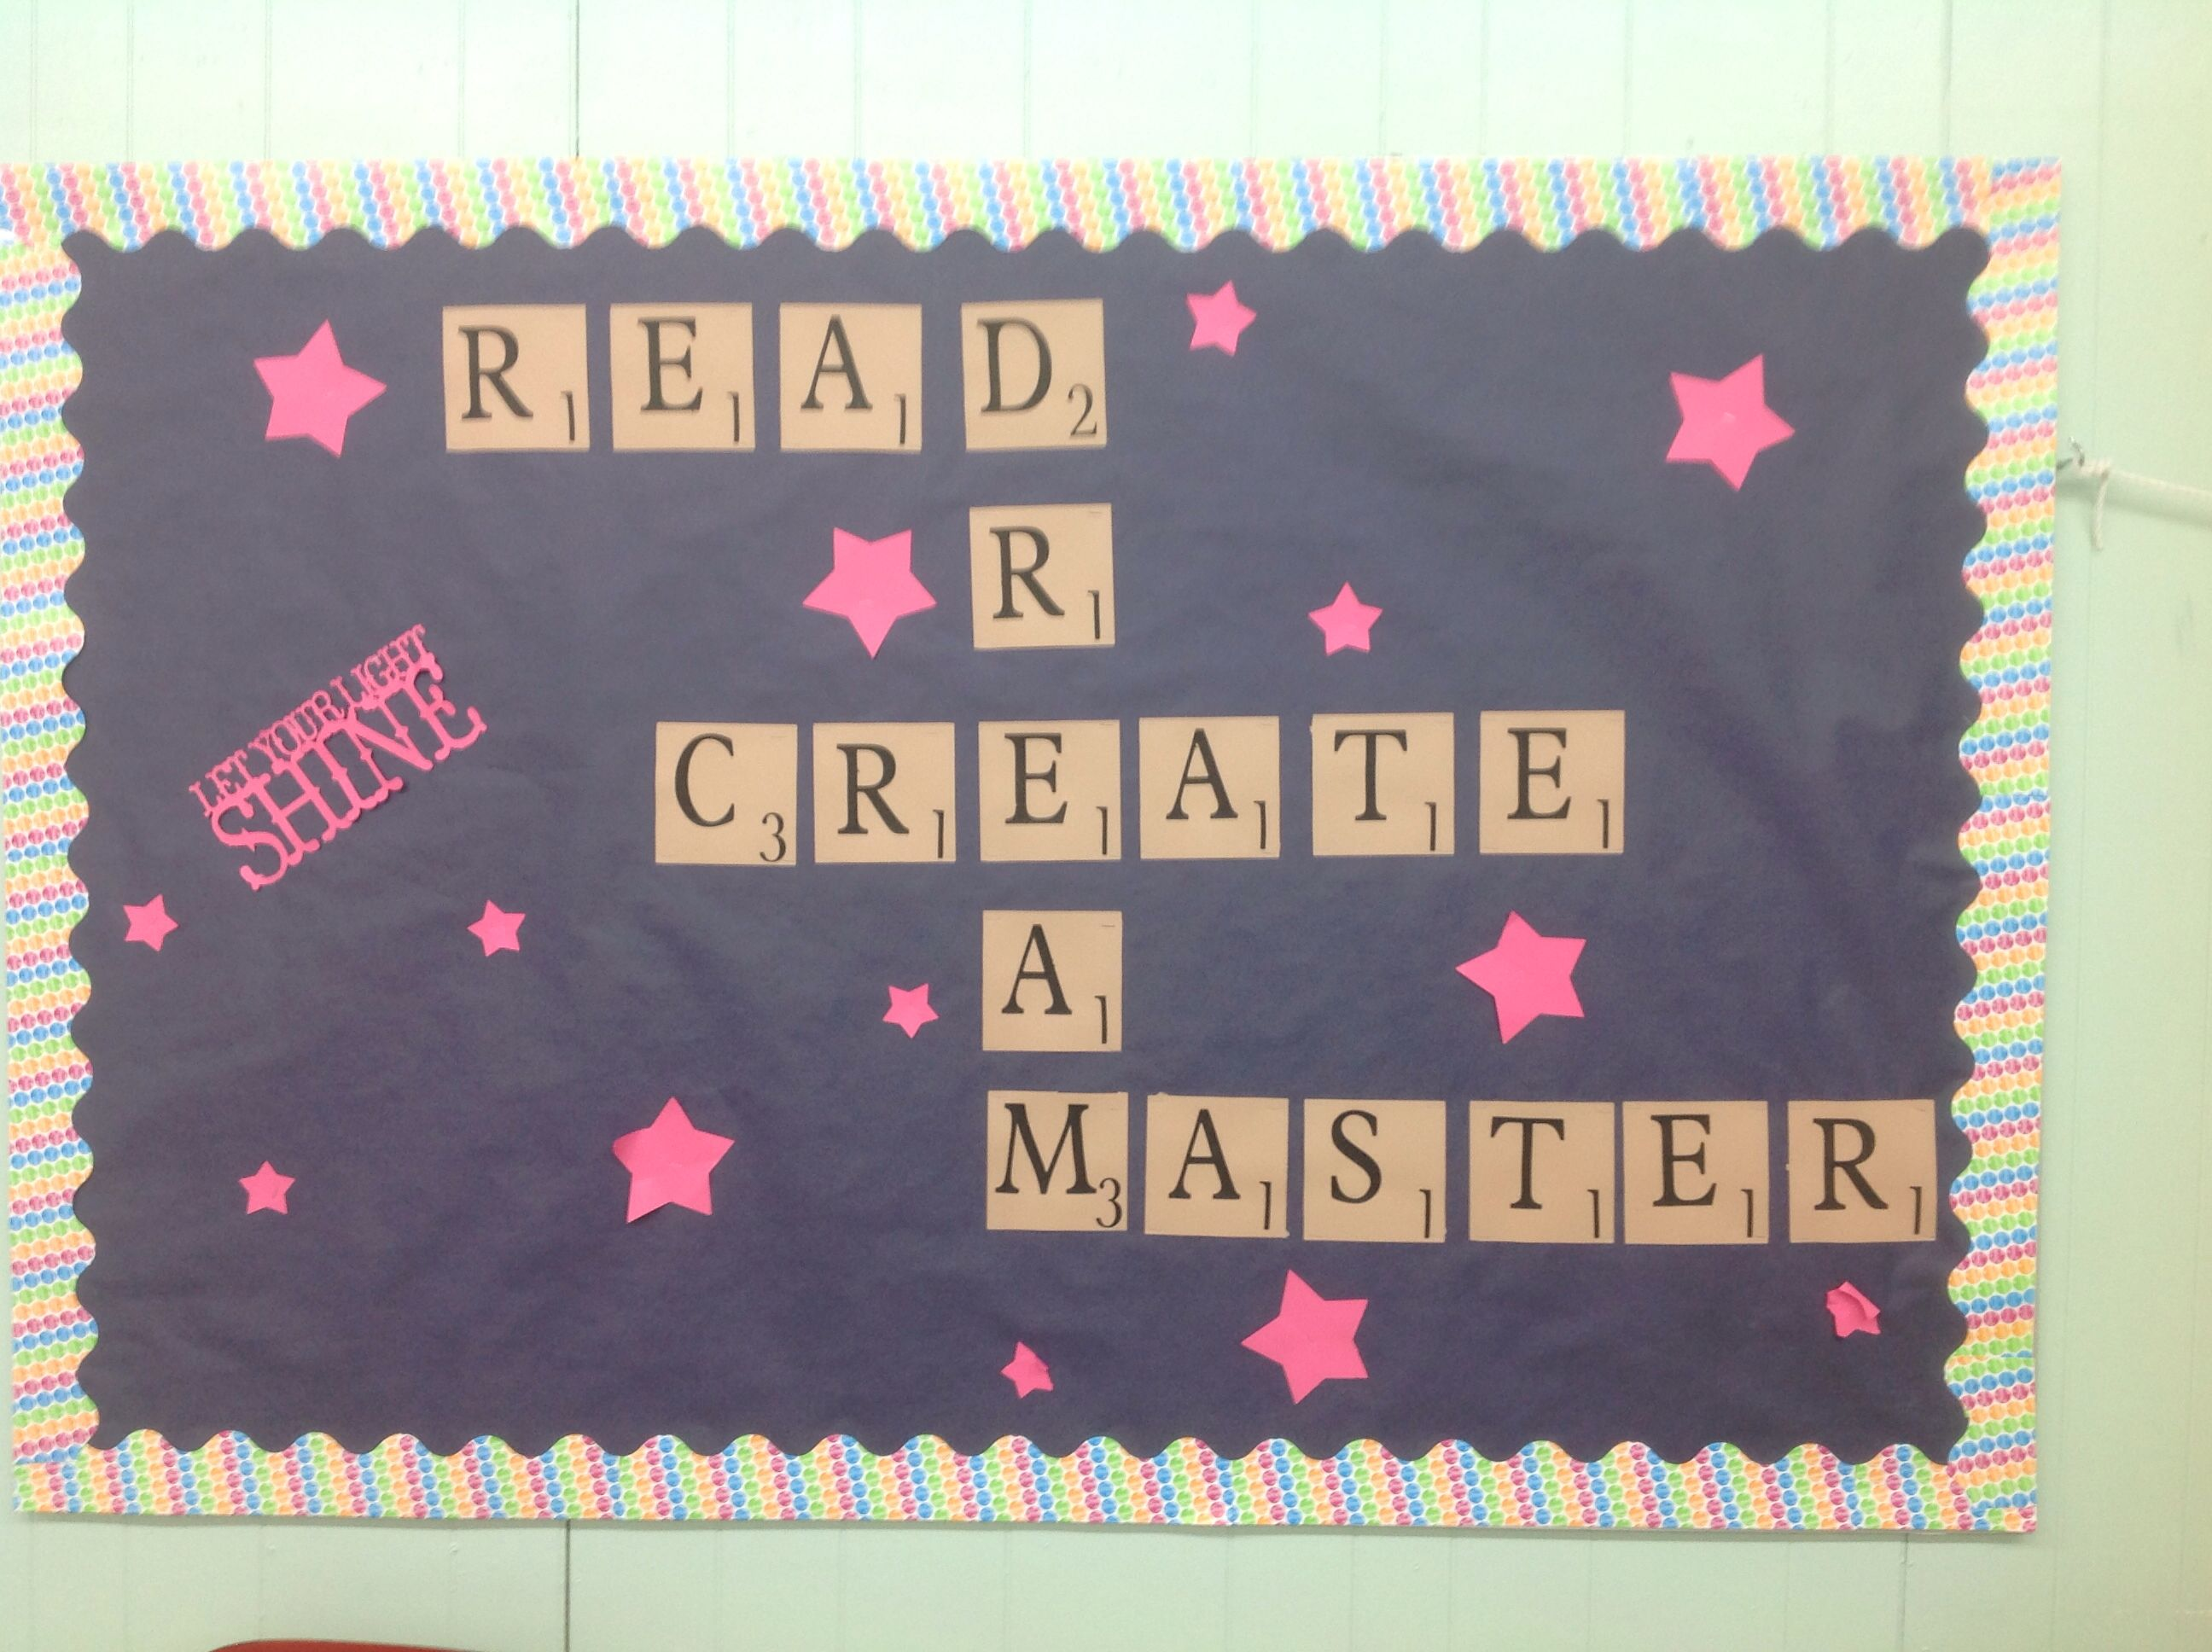 Scrabble themed bulletin board